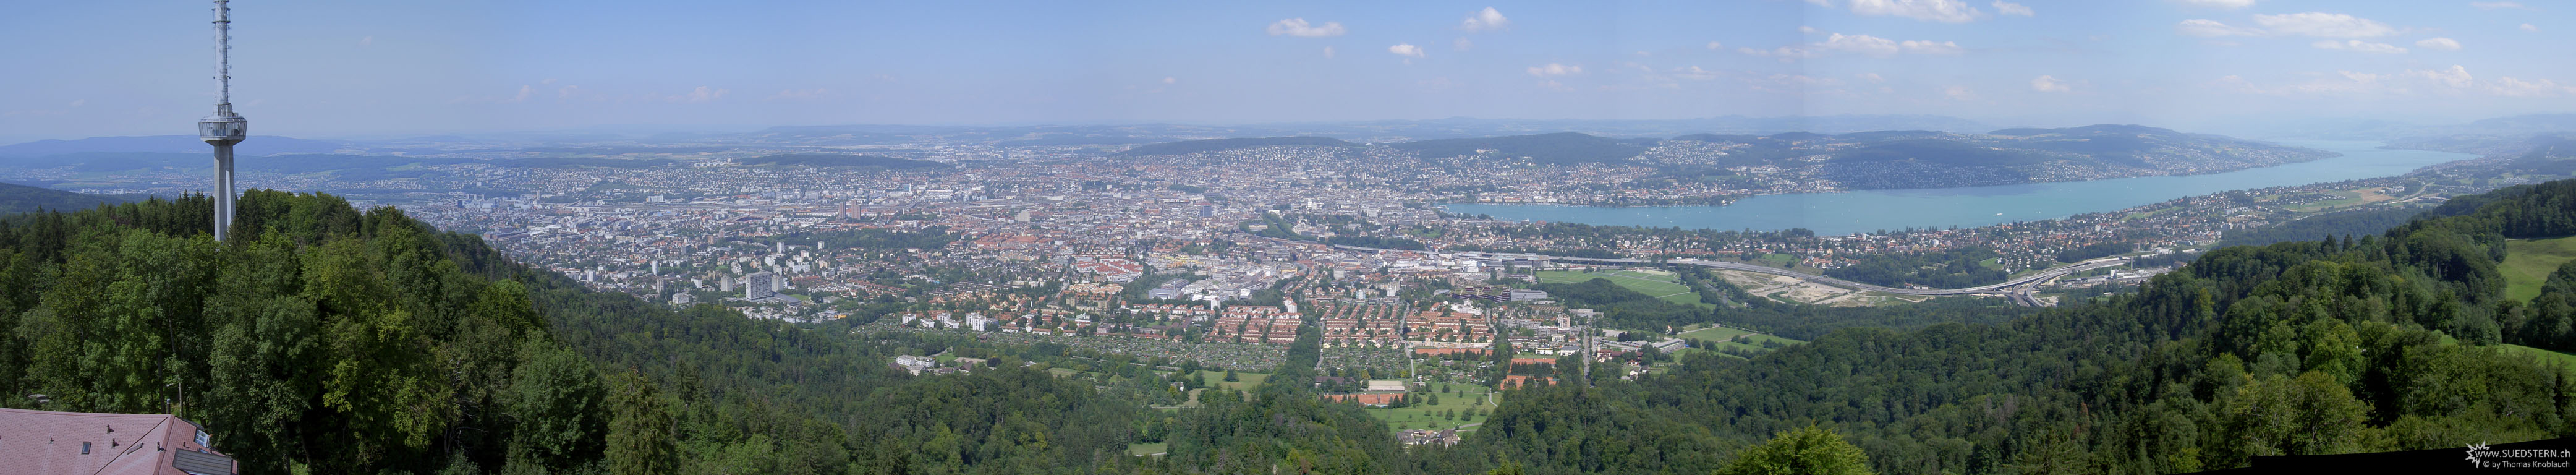 2007-07-27 - Panorama from Uetliberg Zürich, Switzerland